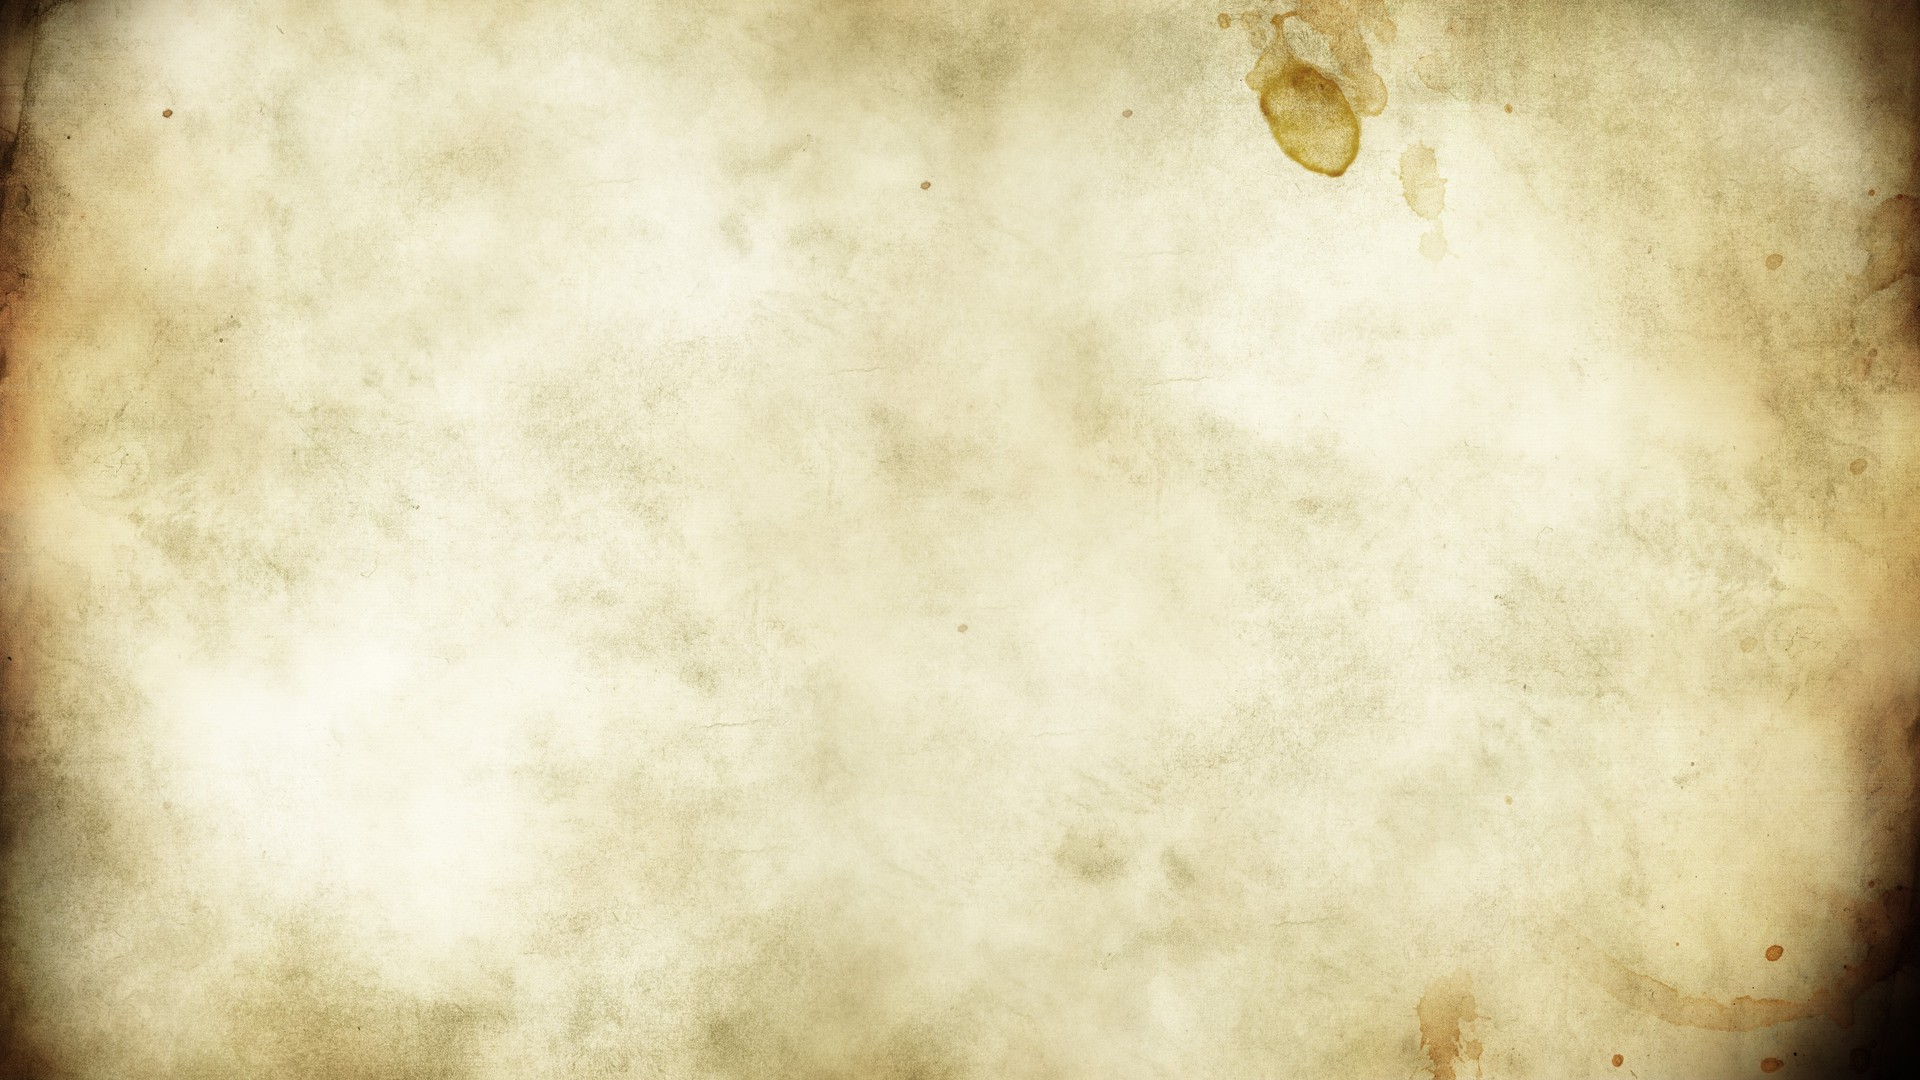 hd grunge wallpaper texture - photo #13